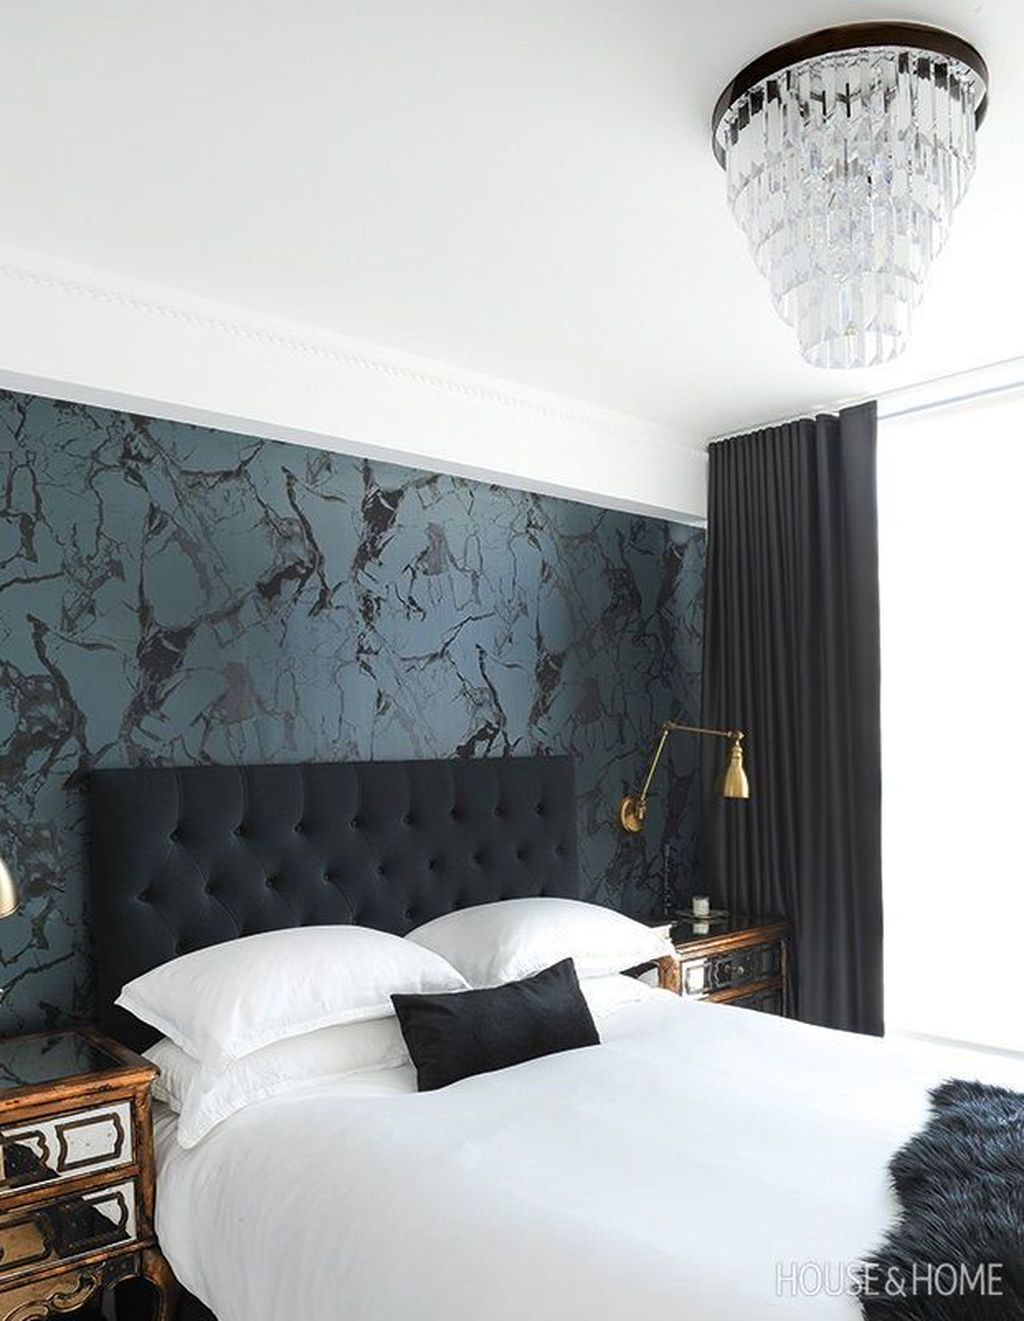 Best Bedroom Wallpaper Decor Ideas That Suitable For Your Family 23